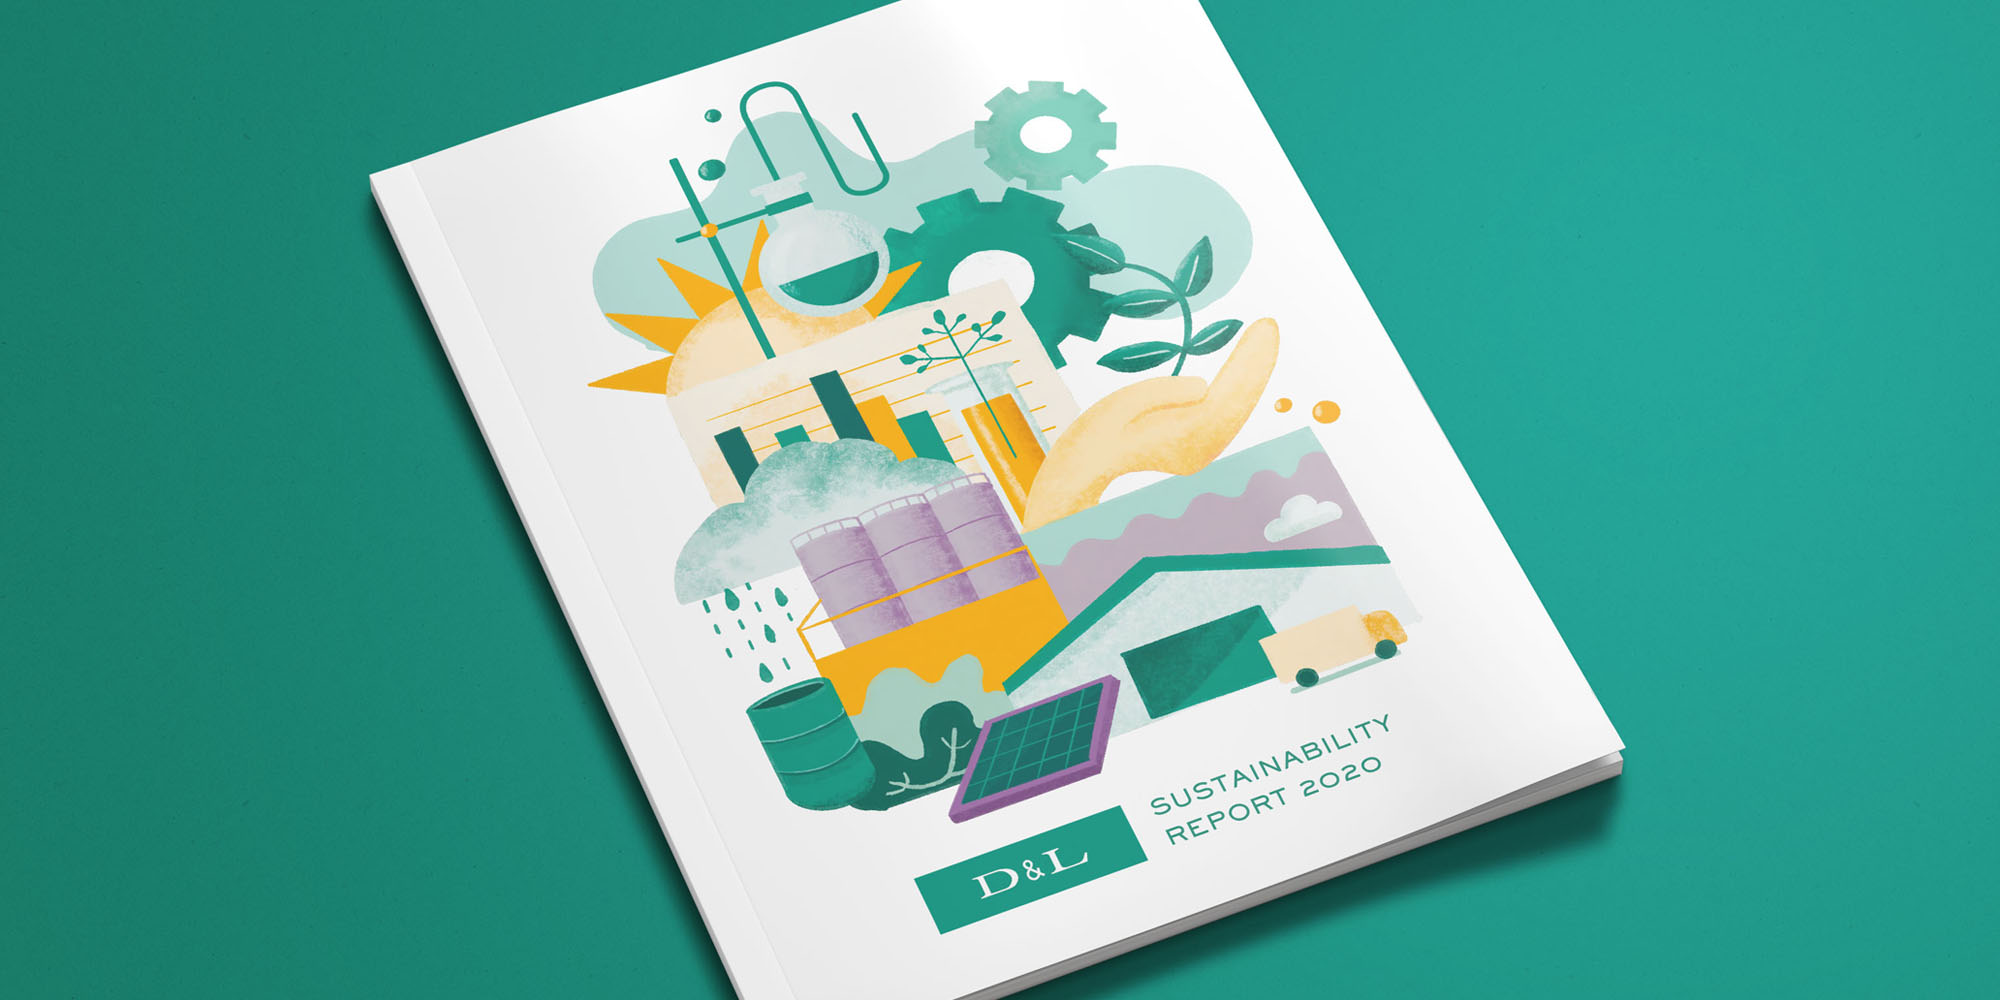 D&L Sustainability Report